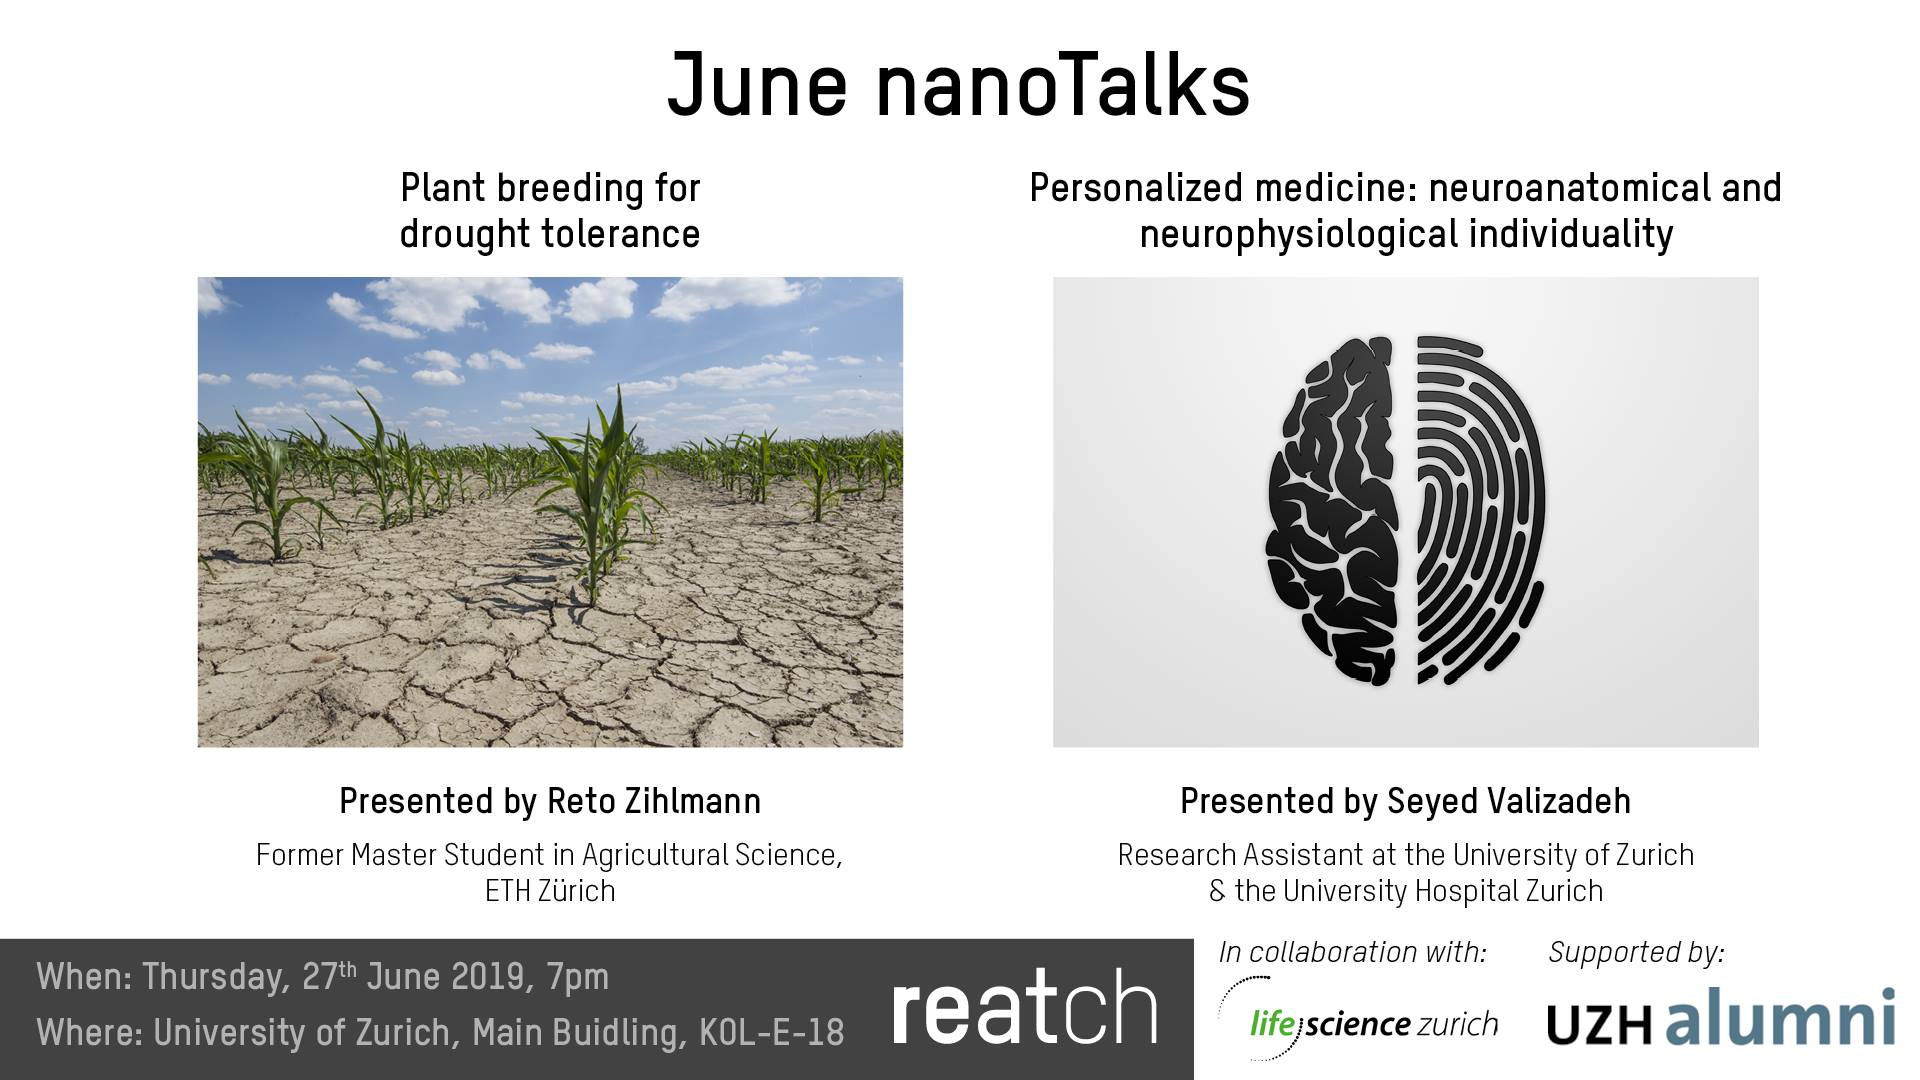 nanoTalks April 2019